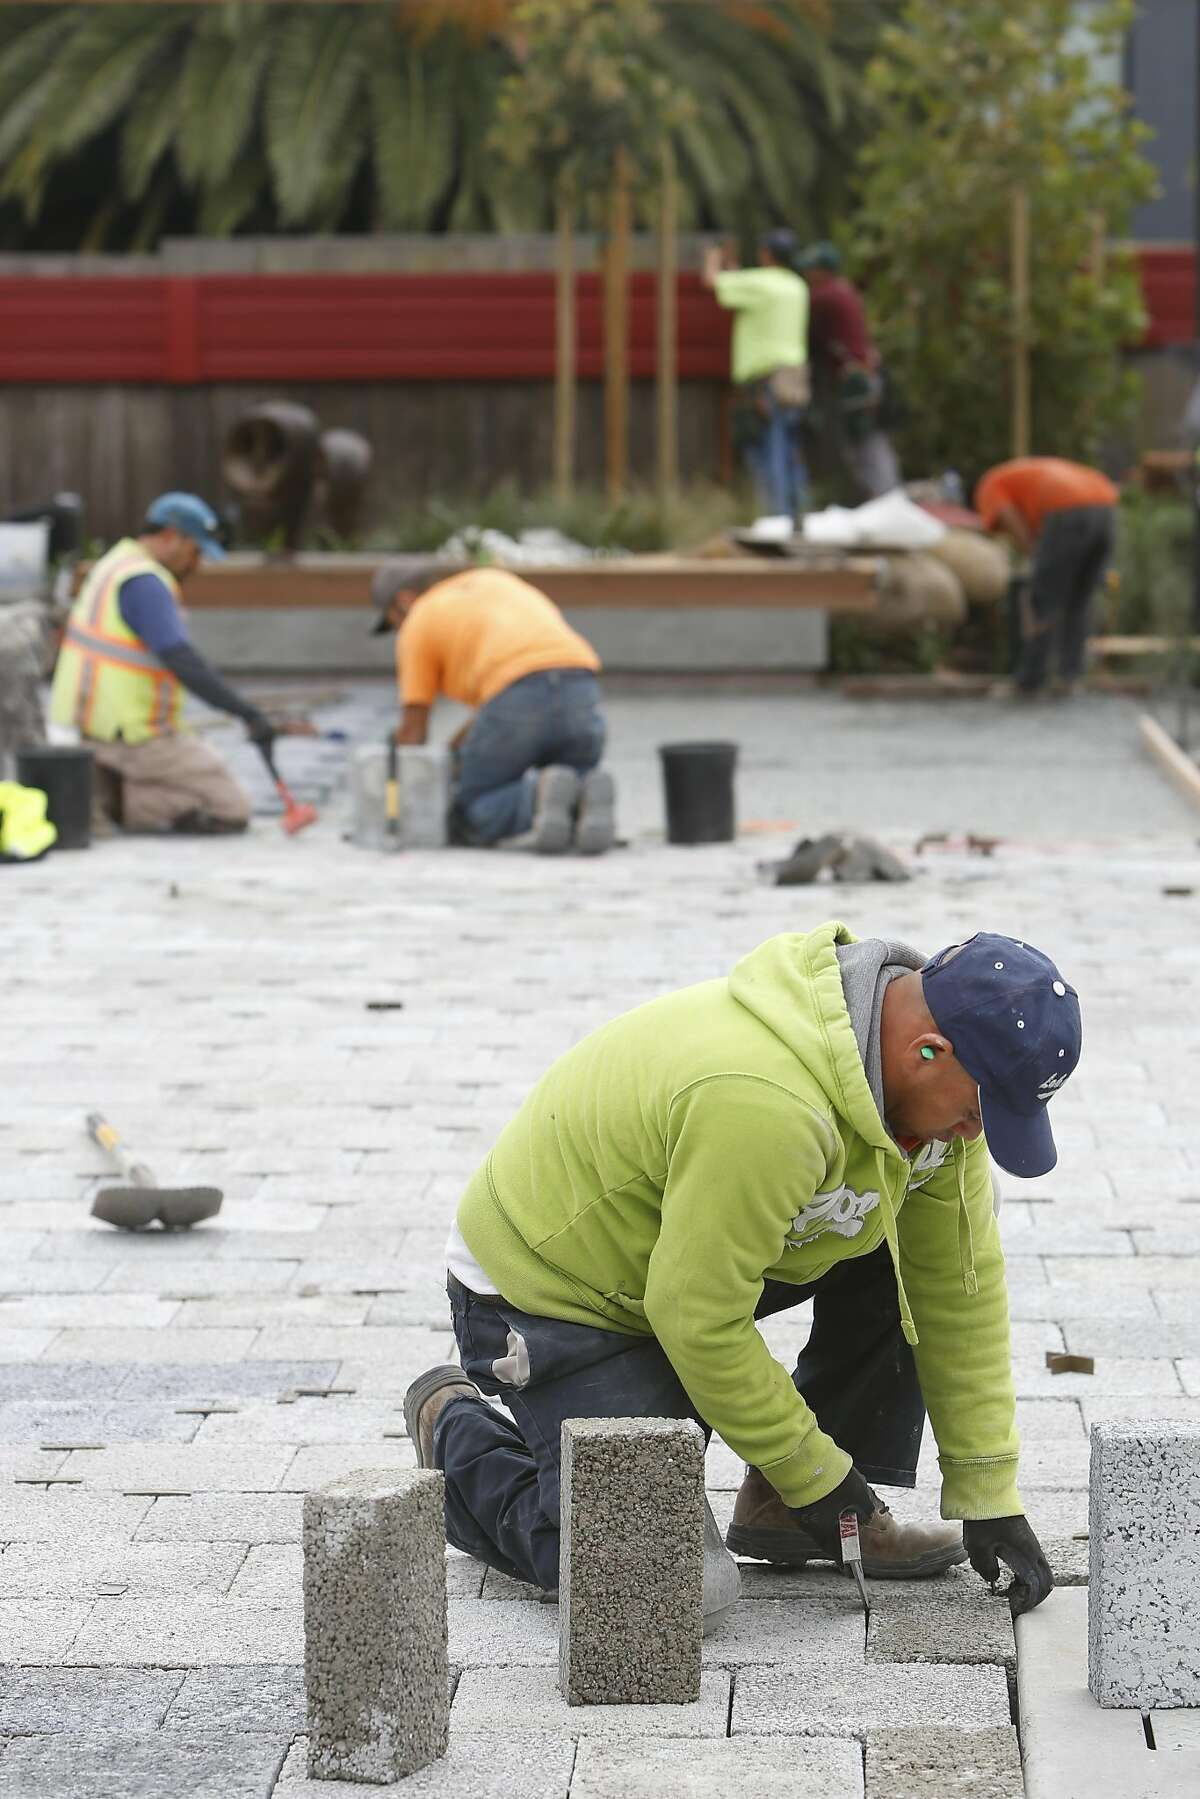 Edgar Guerrero, laborer Bauman Landscape and Construction, screeds rocks for pavers at Noe Valley Town Square on Monday, October 24, 2016 in San Francisco, Calif.